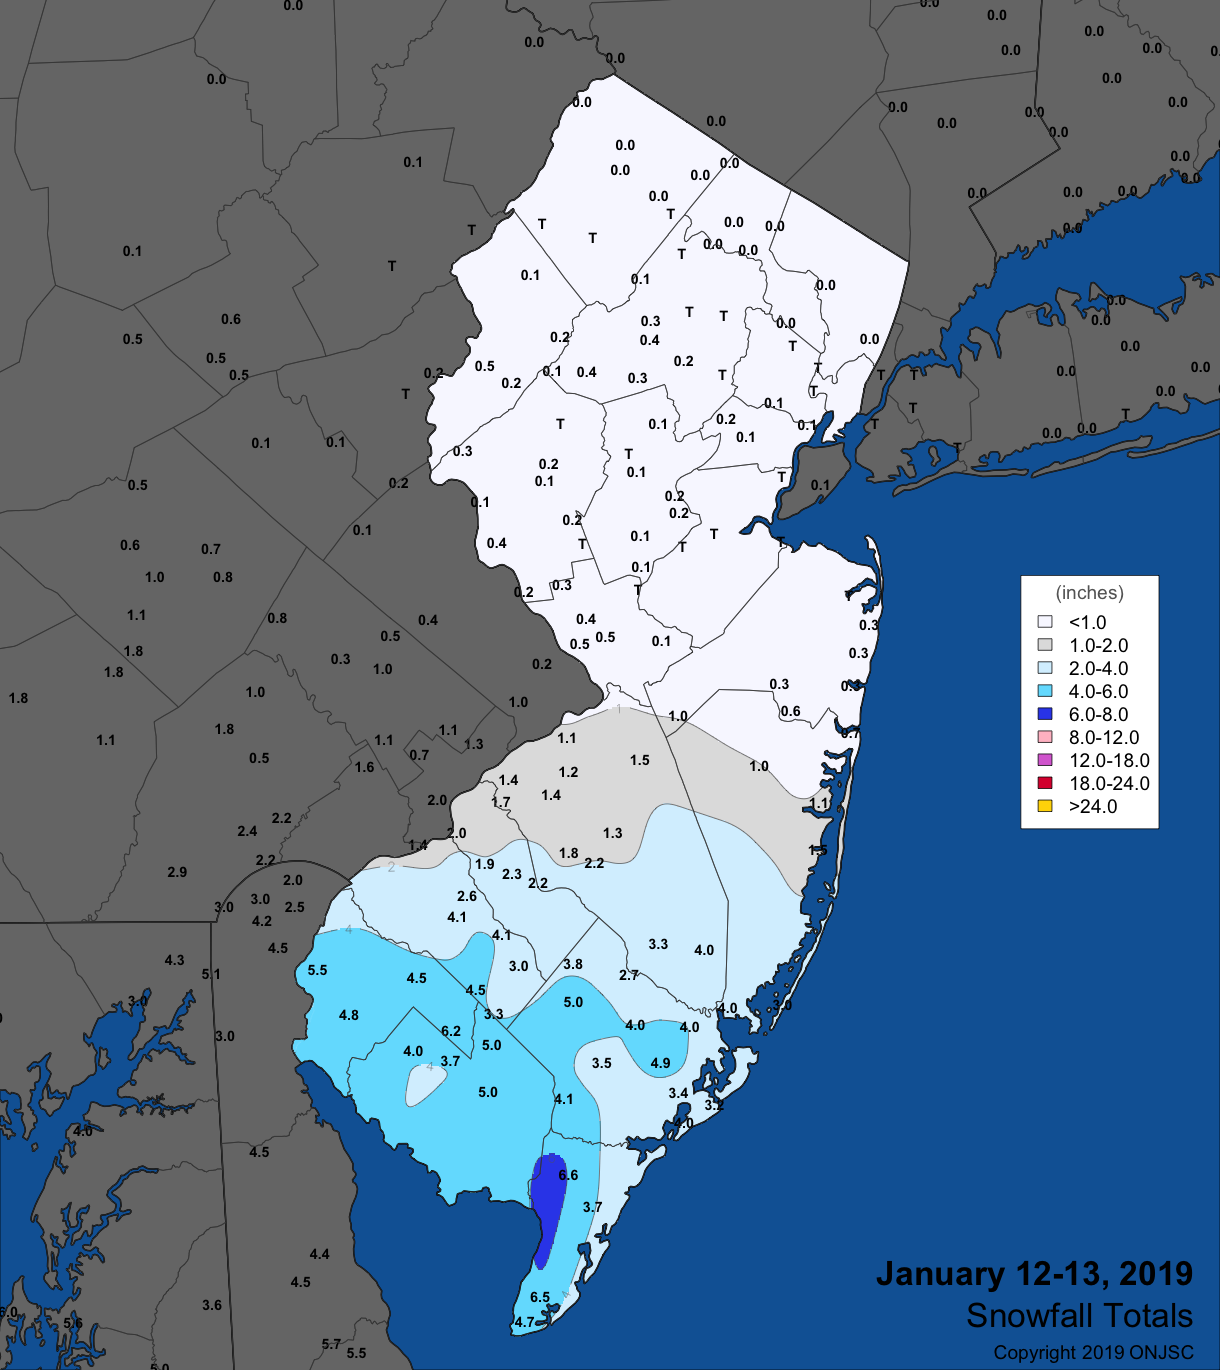 Snowfall map for January 12th-13th